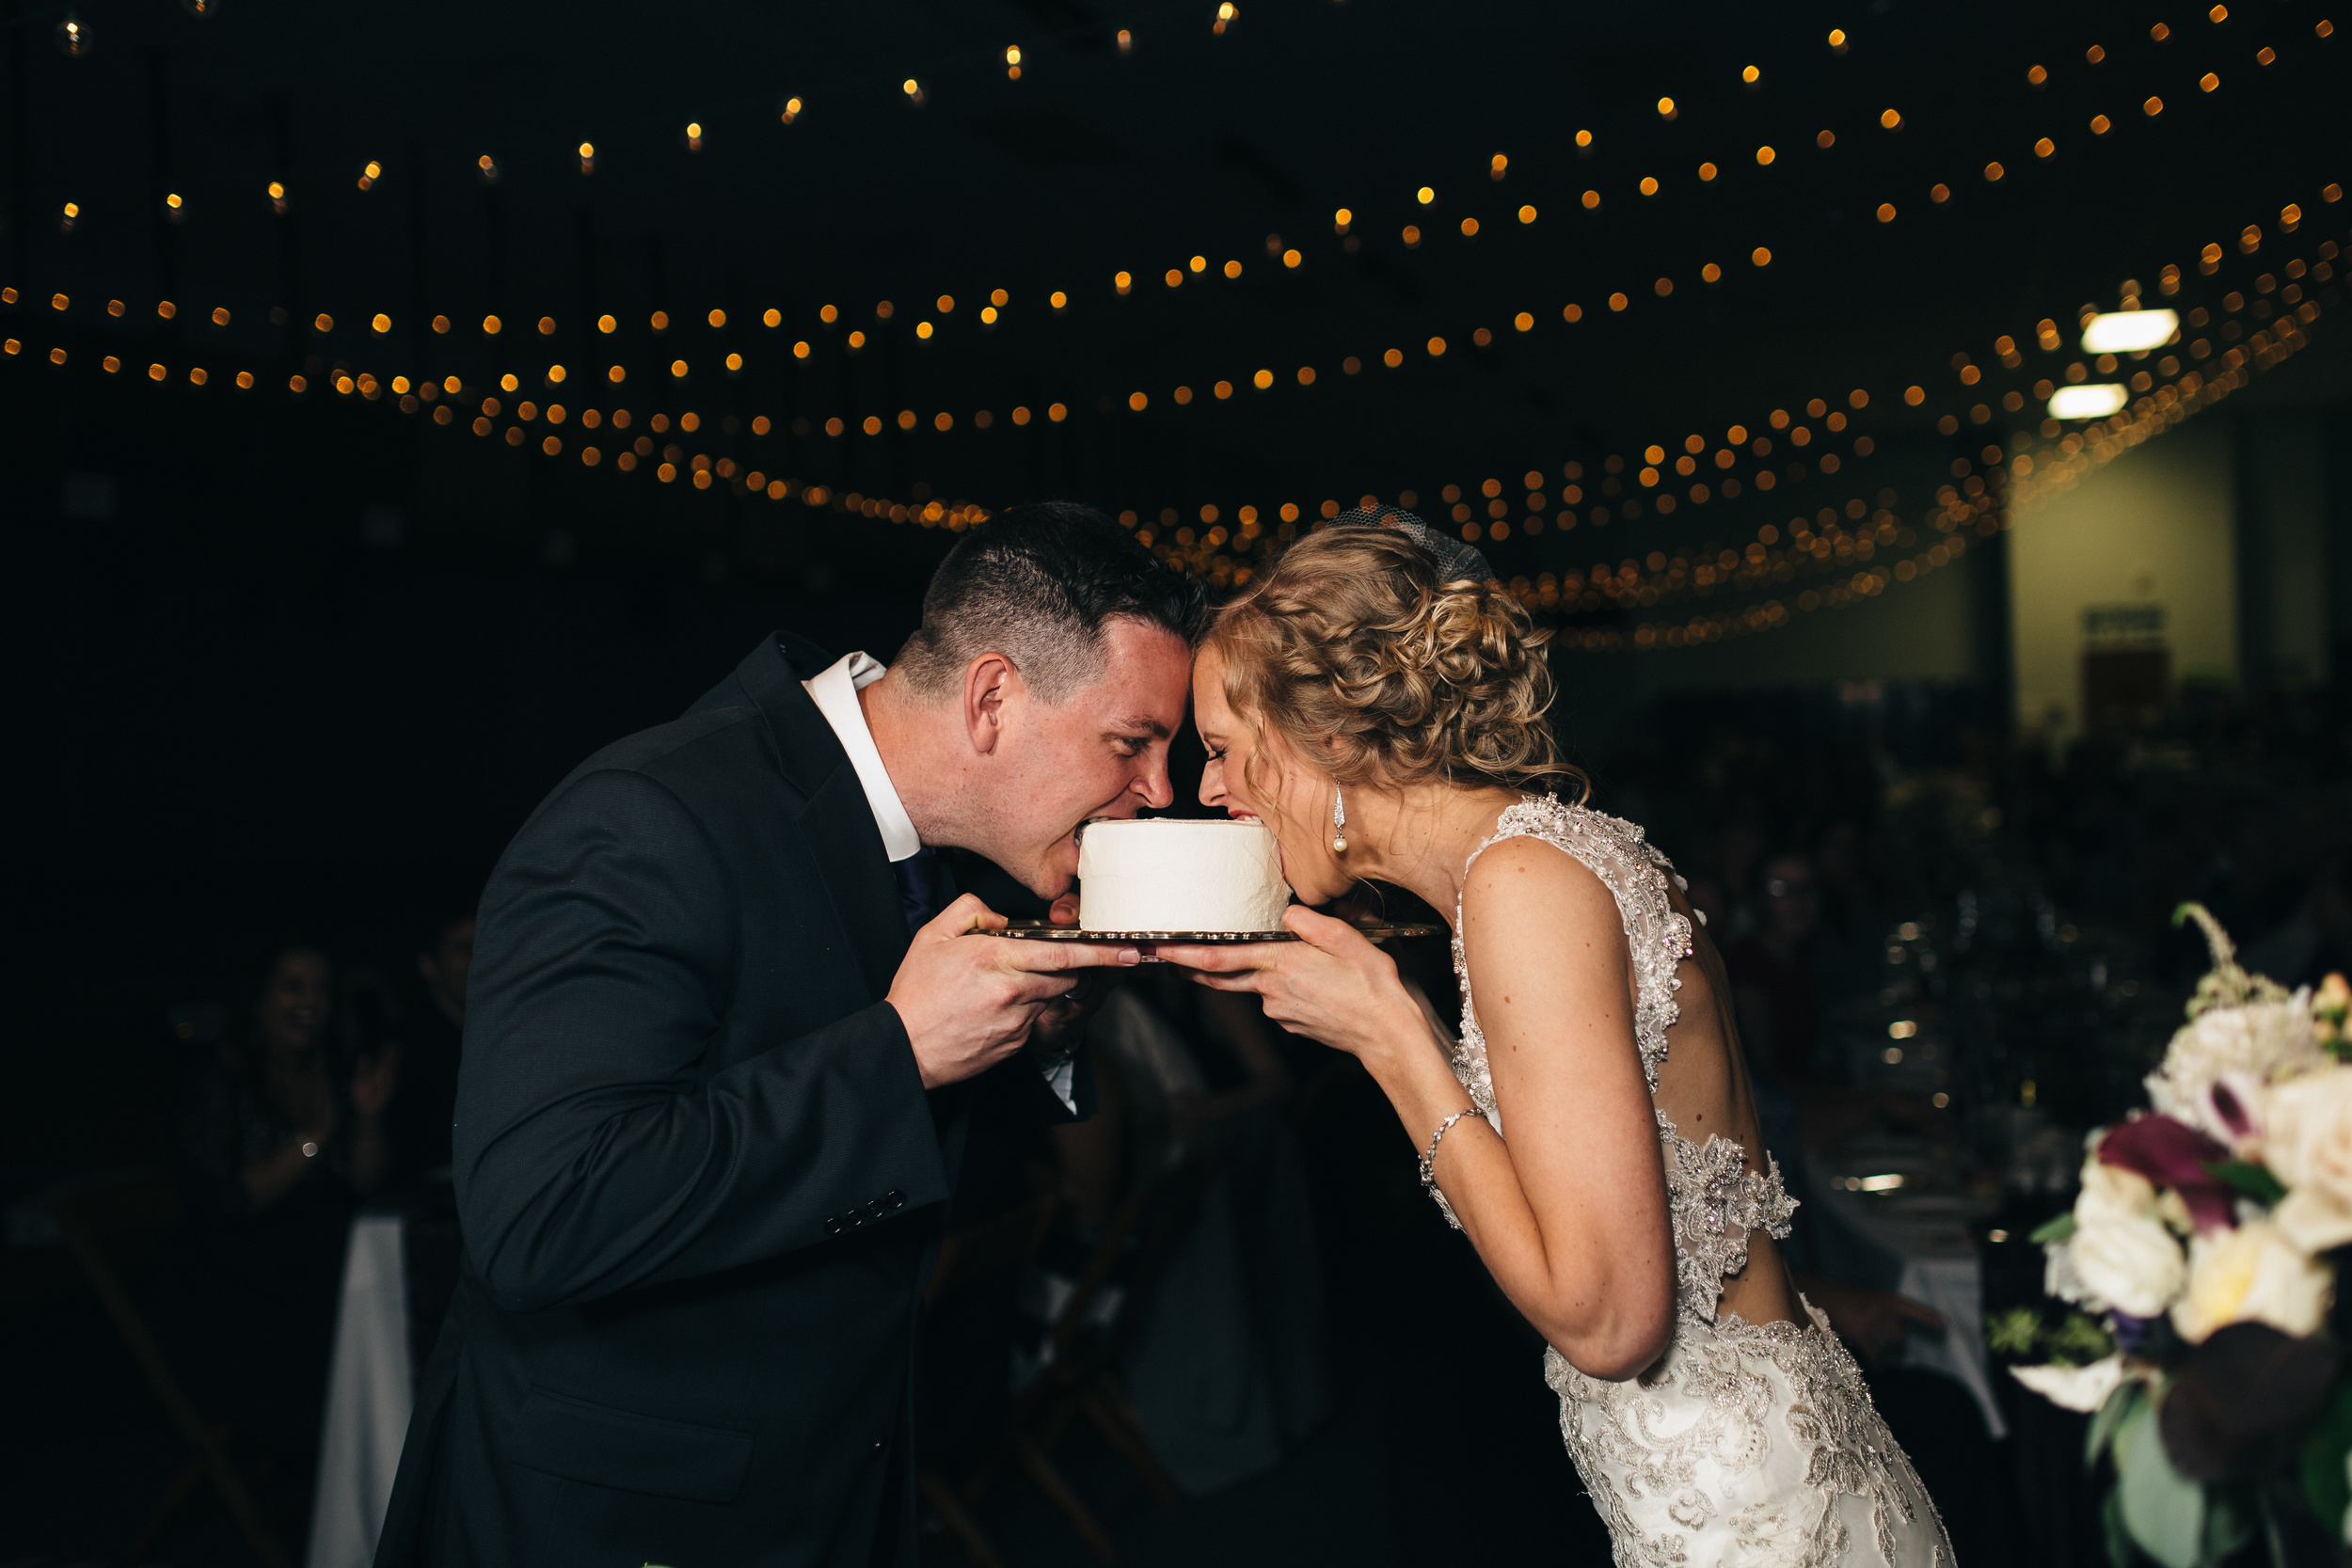 Bride and groom cut cake at wedding reception in Fremont, Ohio.